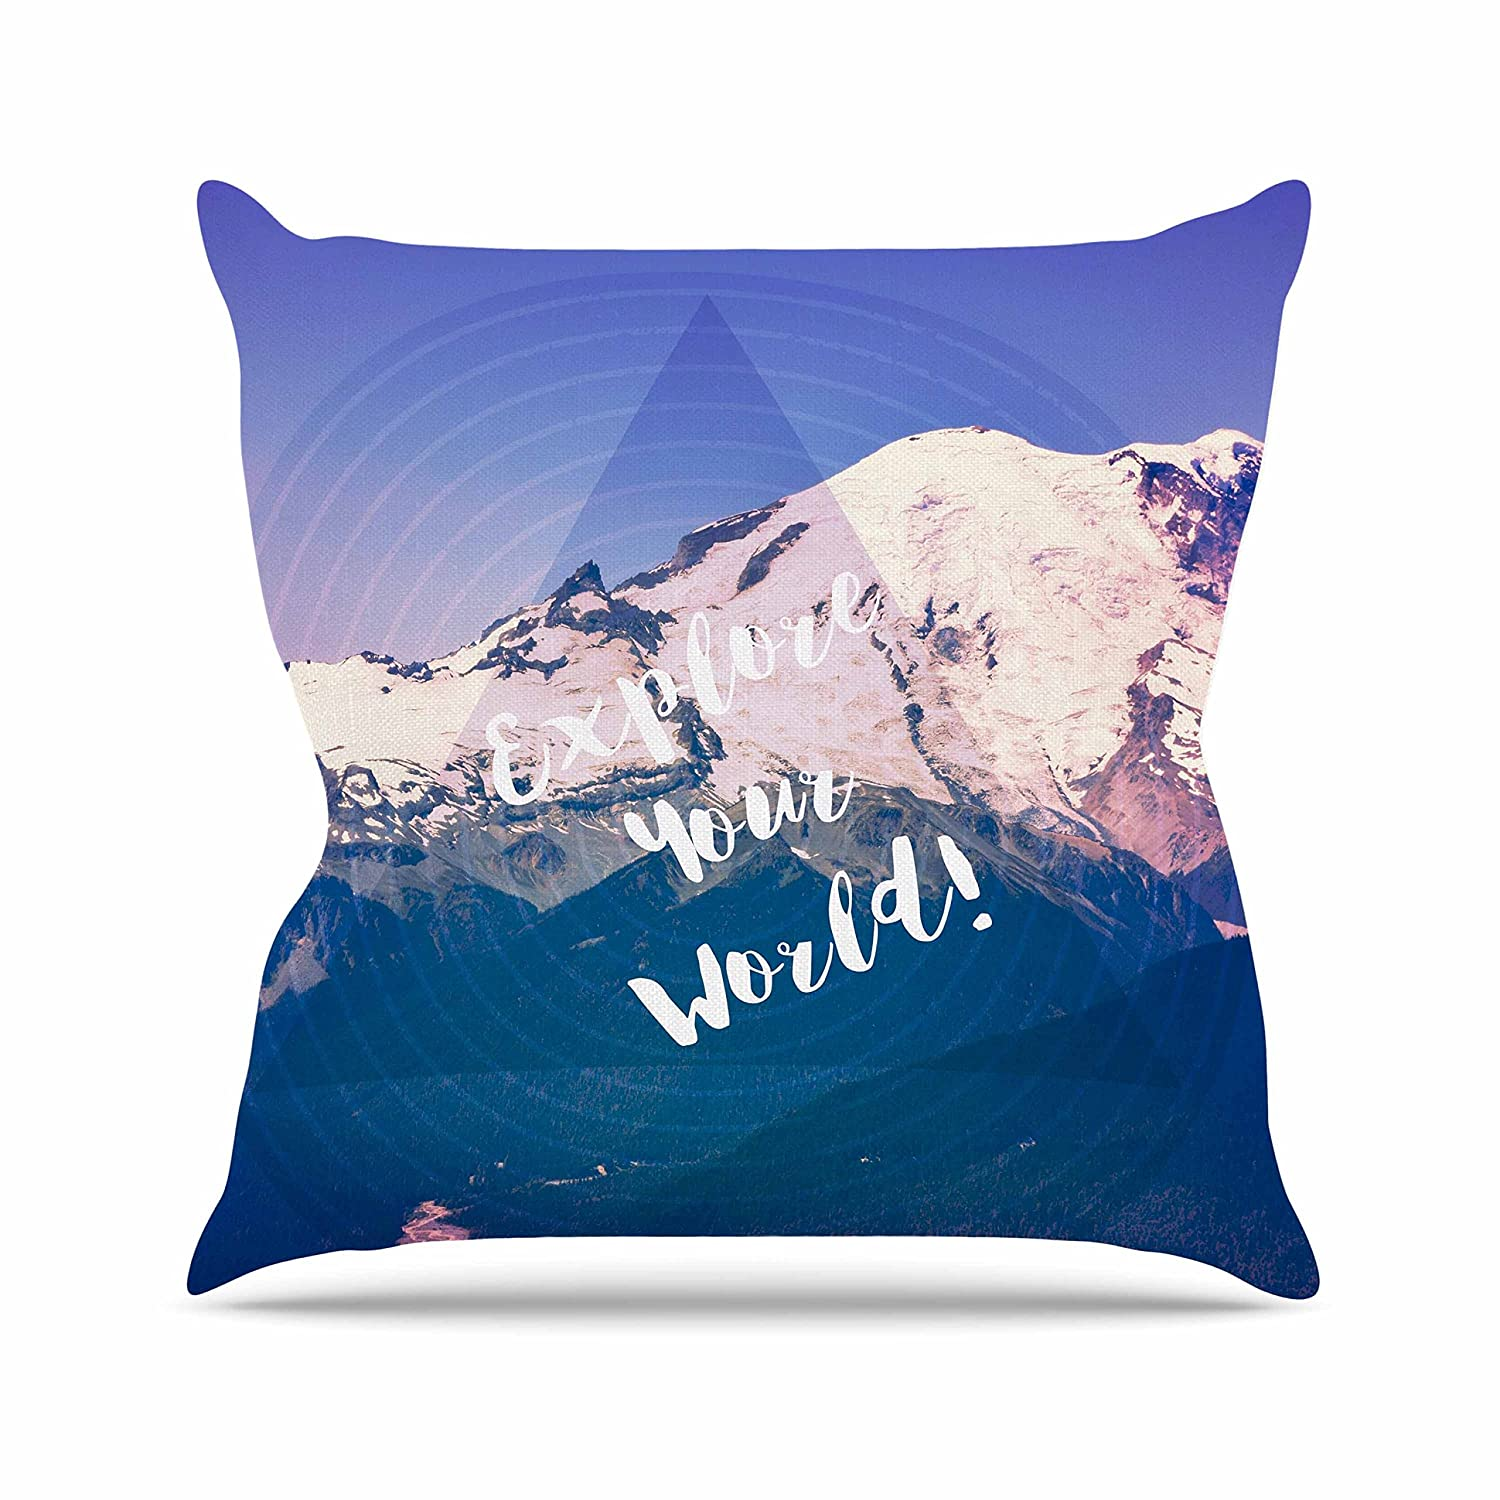 Kess InHouse Robin Dickinson Explore Your World! Blue Purple Throw Pillow, 18 by 18'